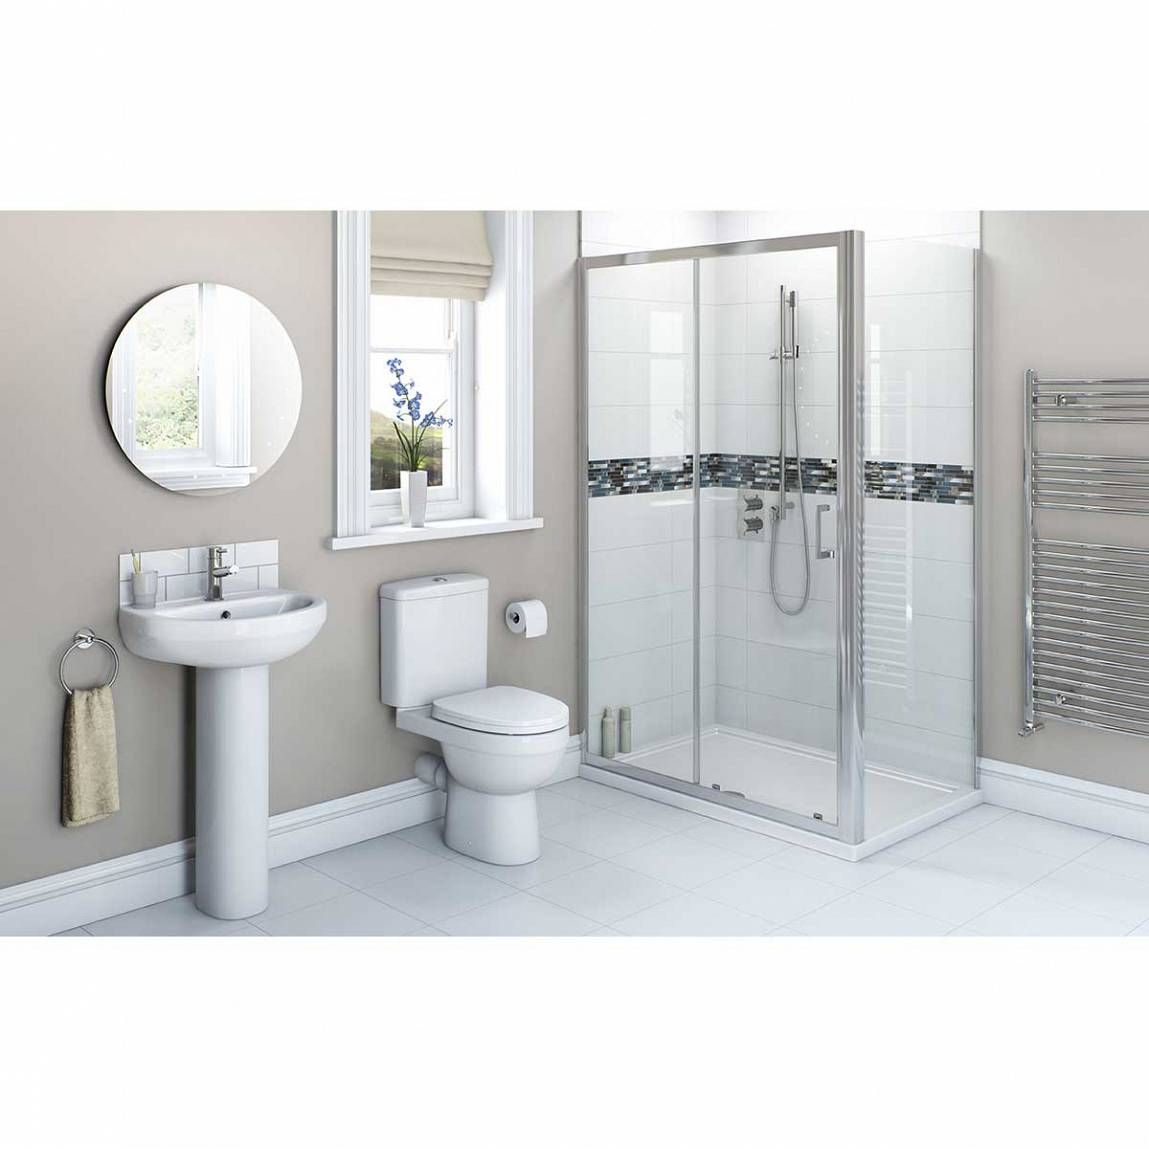 Image of Energy Bathroom set with Sliding Enclosure 1200x800